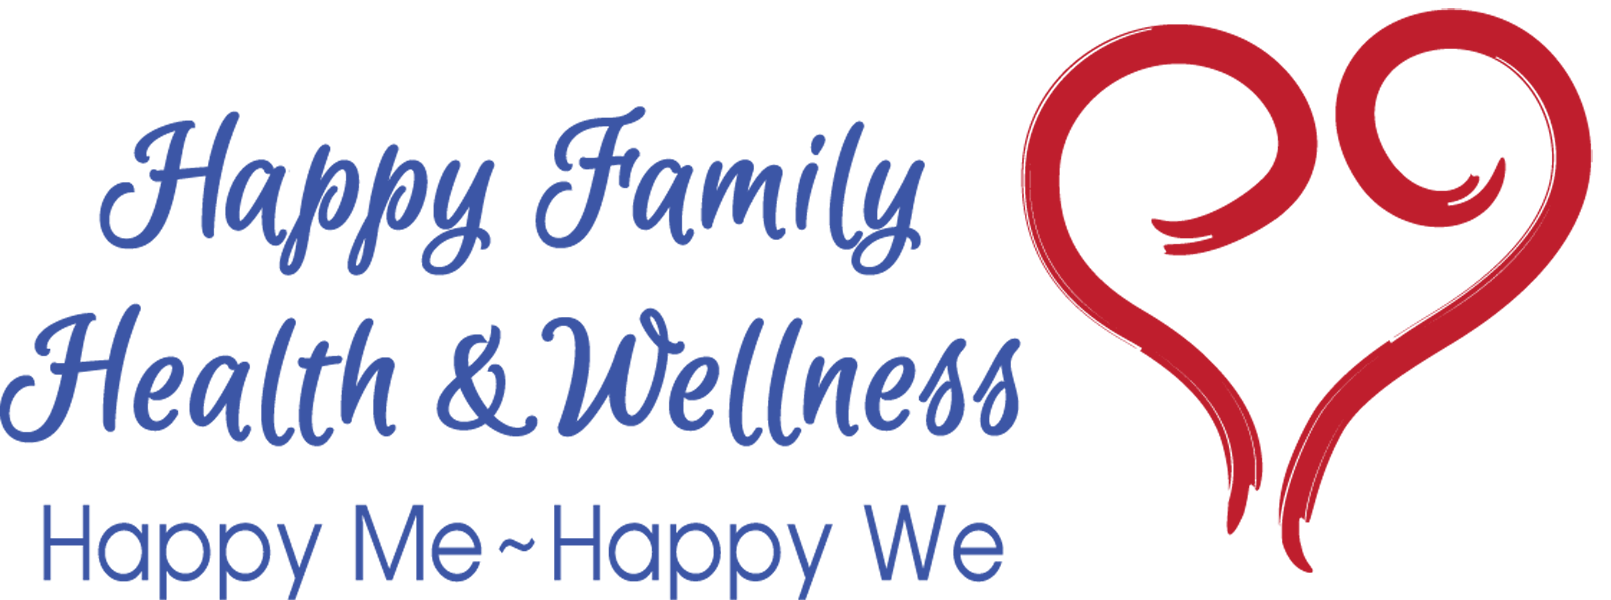 Happy Family Health and Wellness